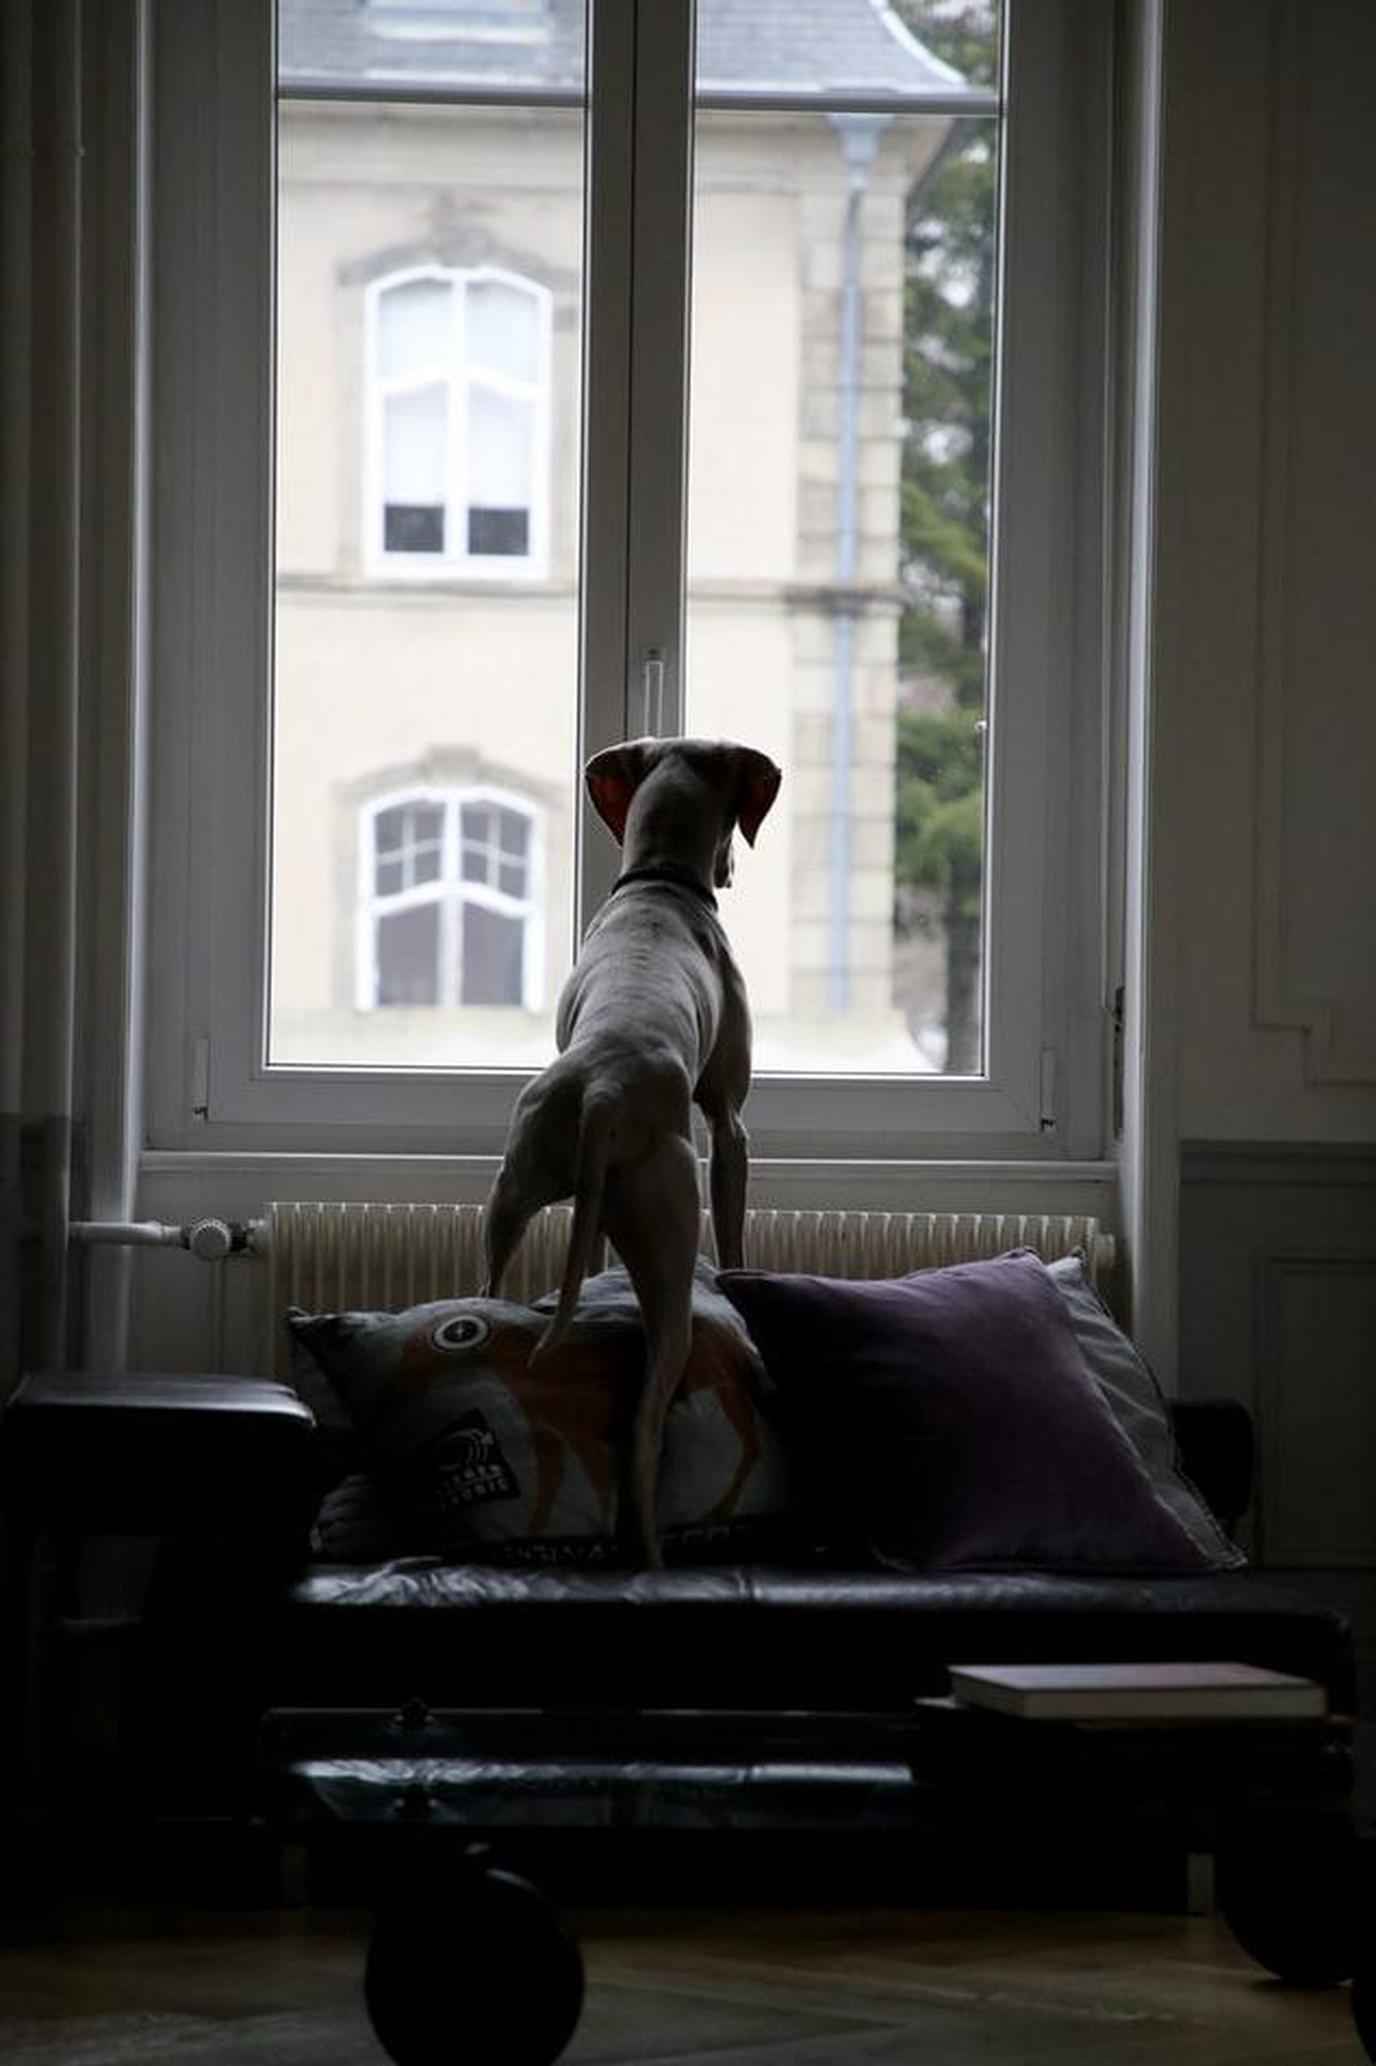 A Dog Stands on a Chair Looking Out of a Window.